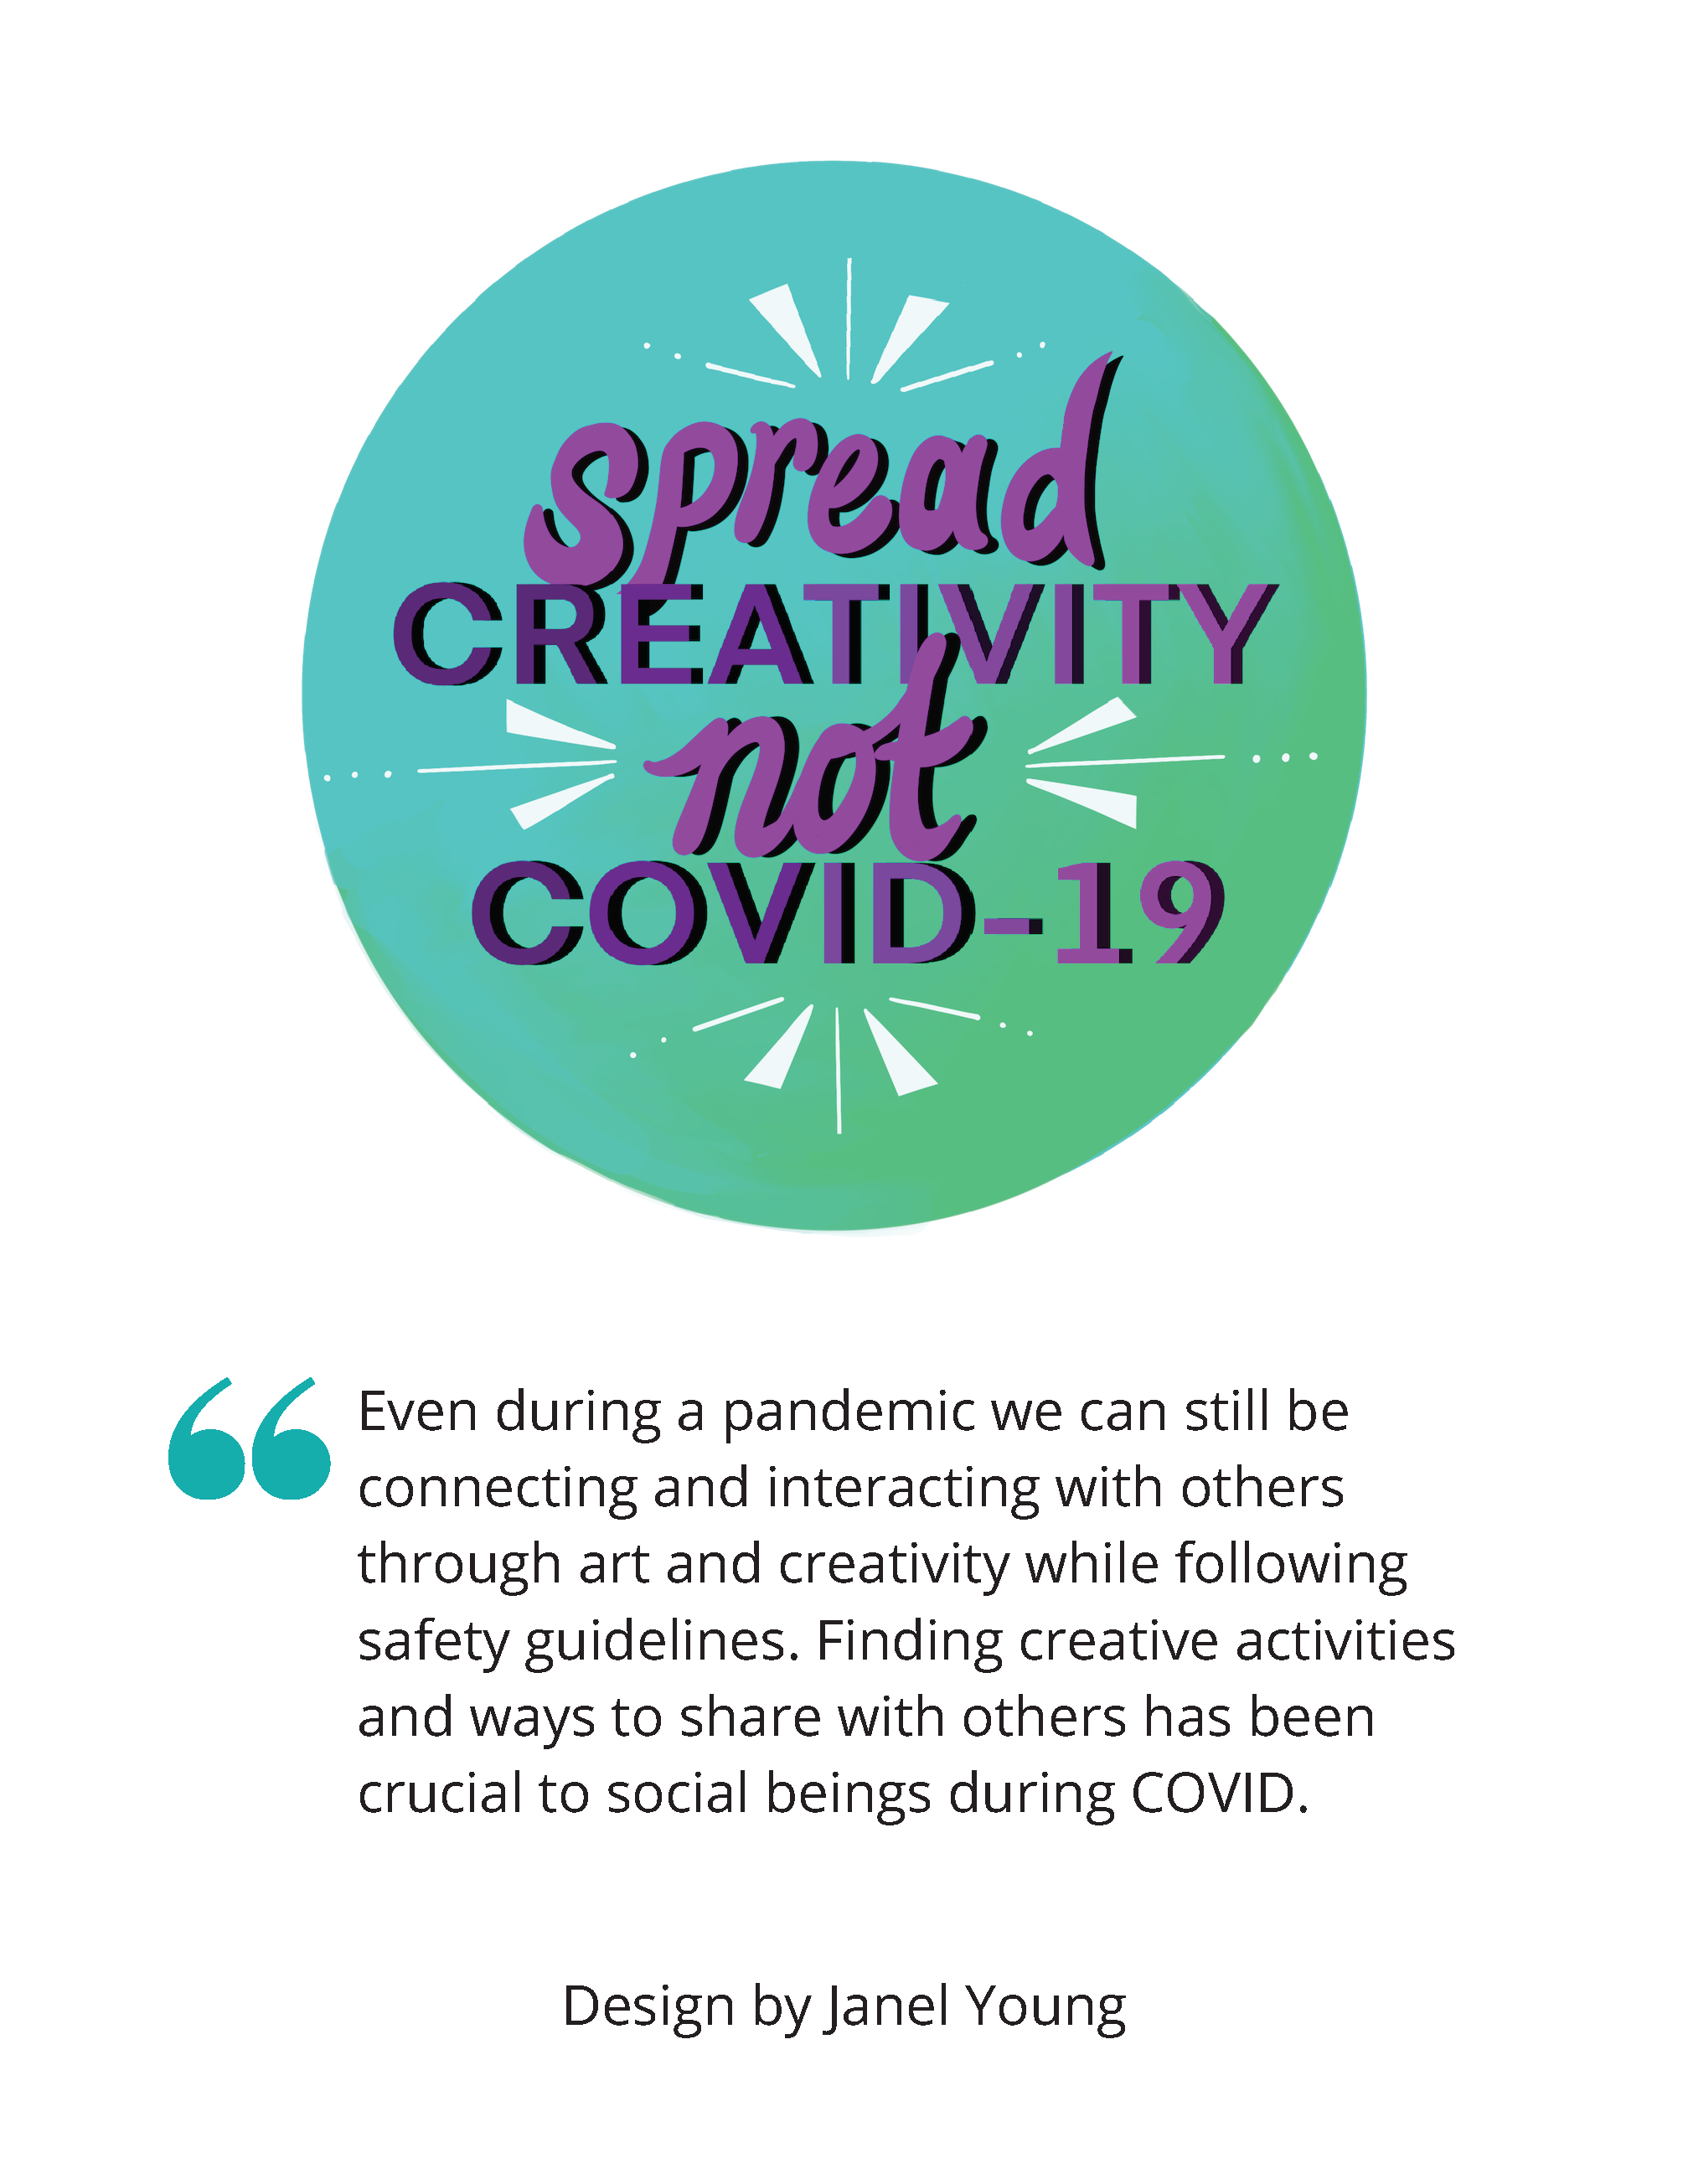 """Image shows a teal and green gradient background with the words """"Spread Creativity, Not COVID-19"""" in purple"""